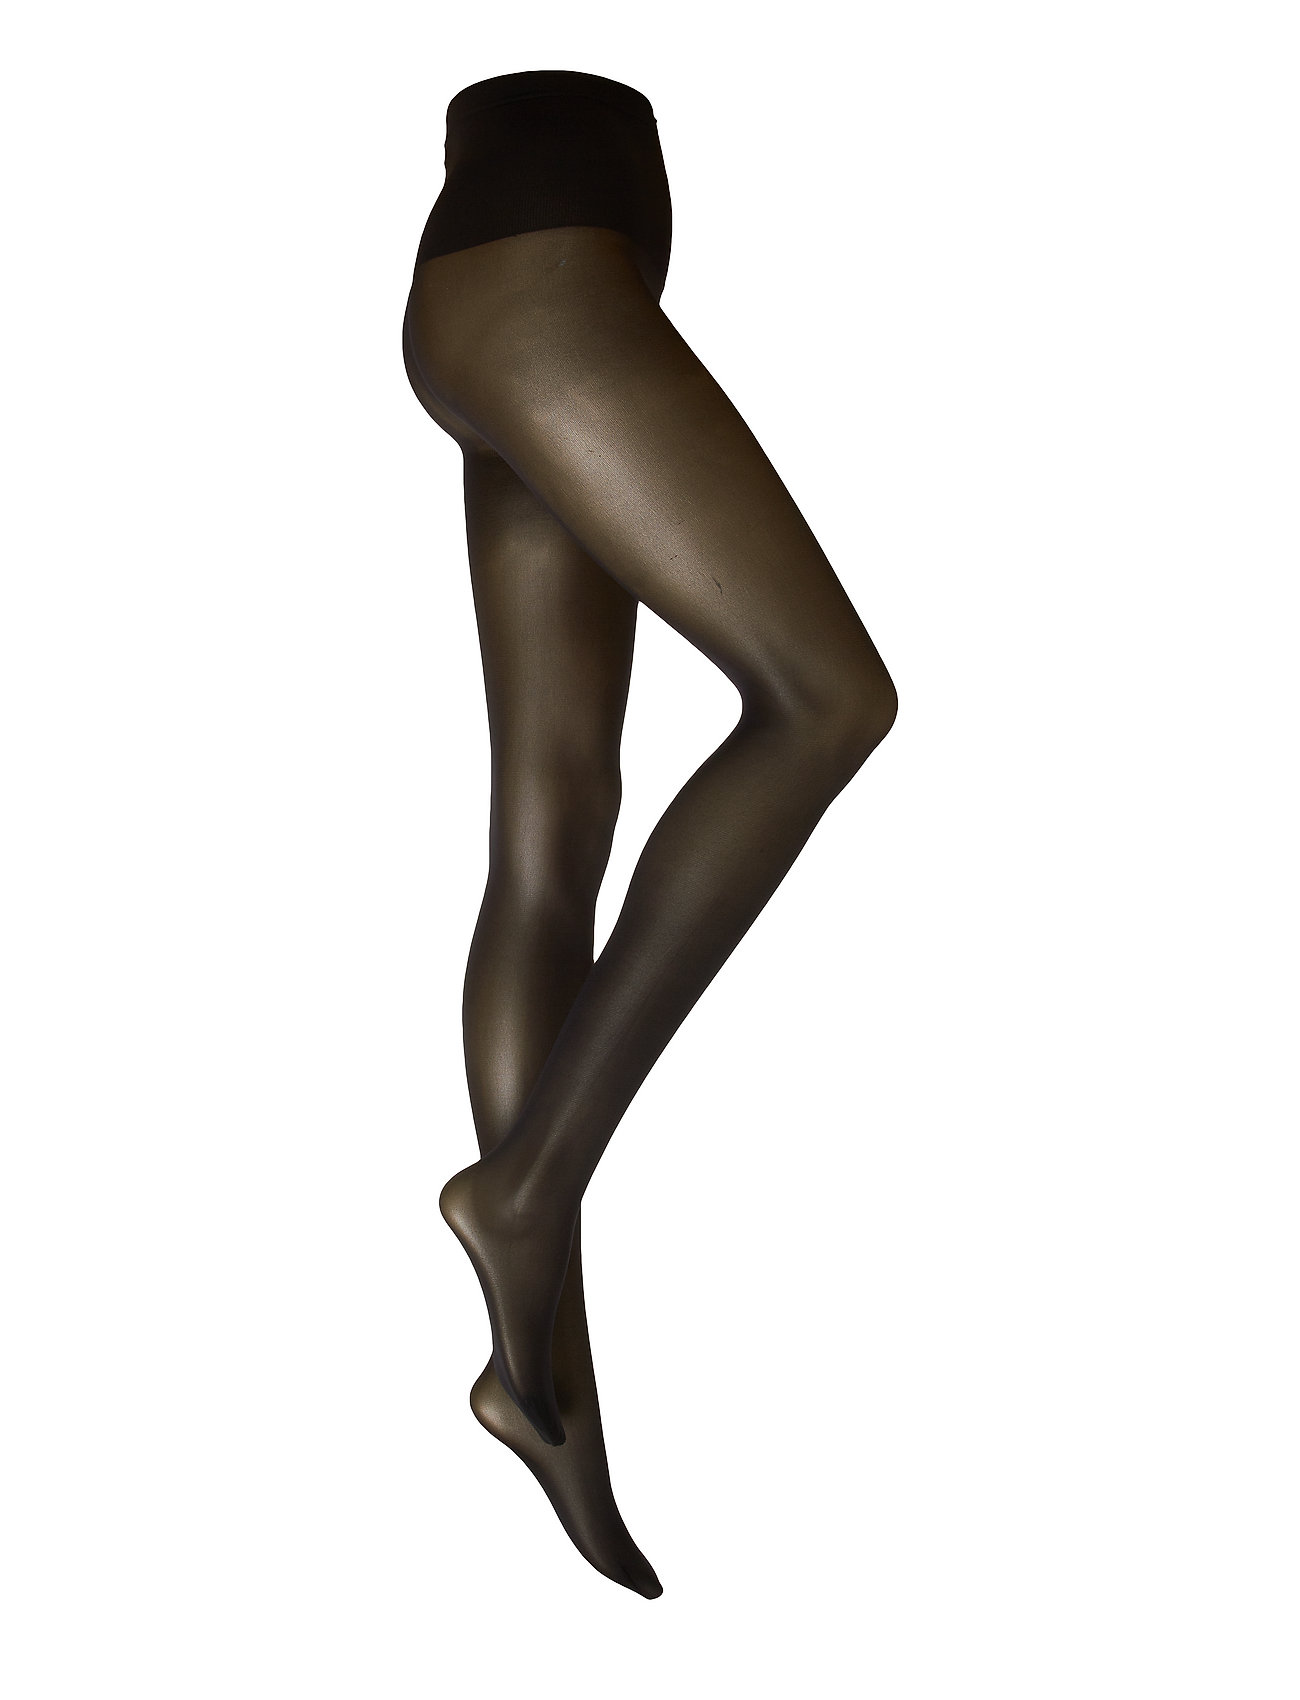 Swedish Stockings Svea Premium tights 30D - BLACK